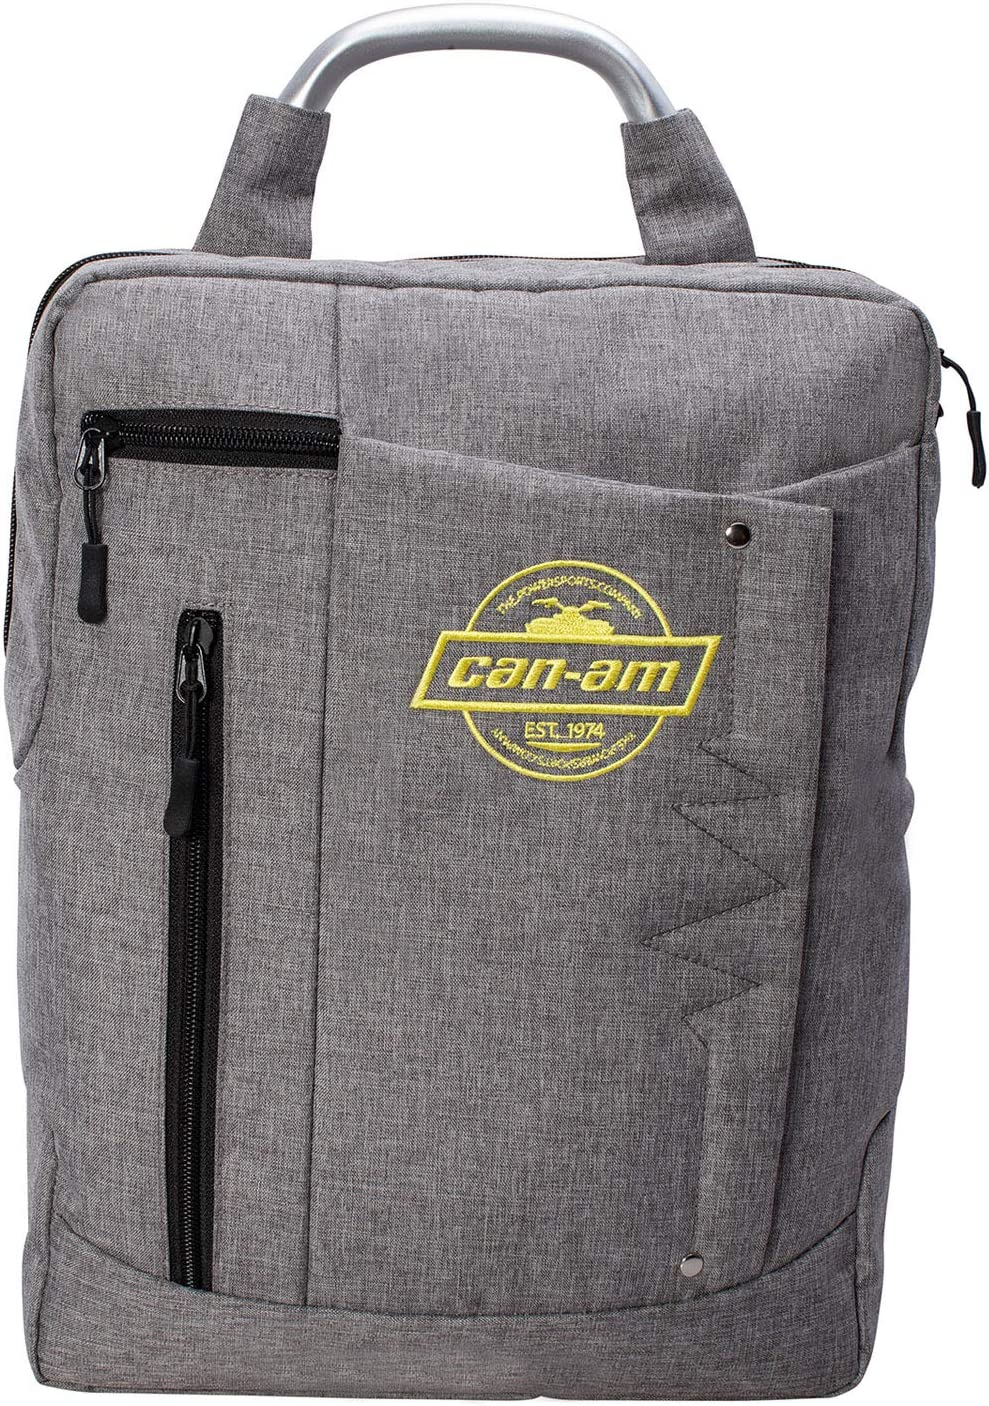 Can-Am Some reservation Deluxe Backpack Lifestyle 13